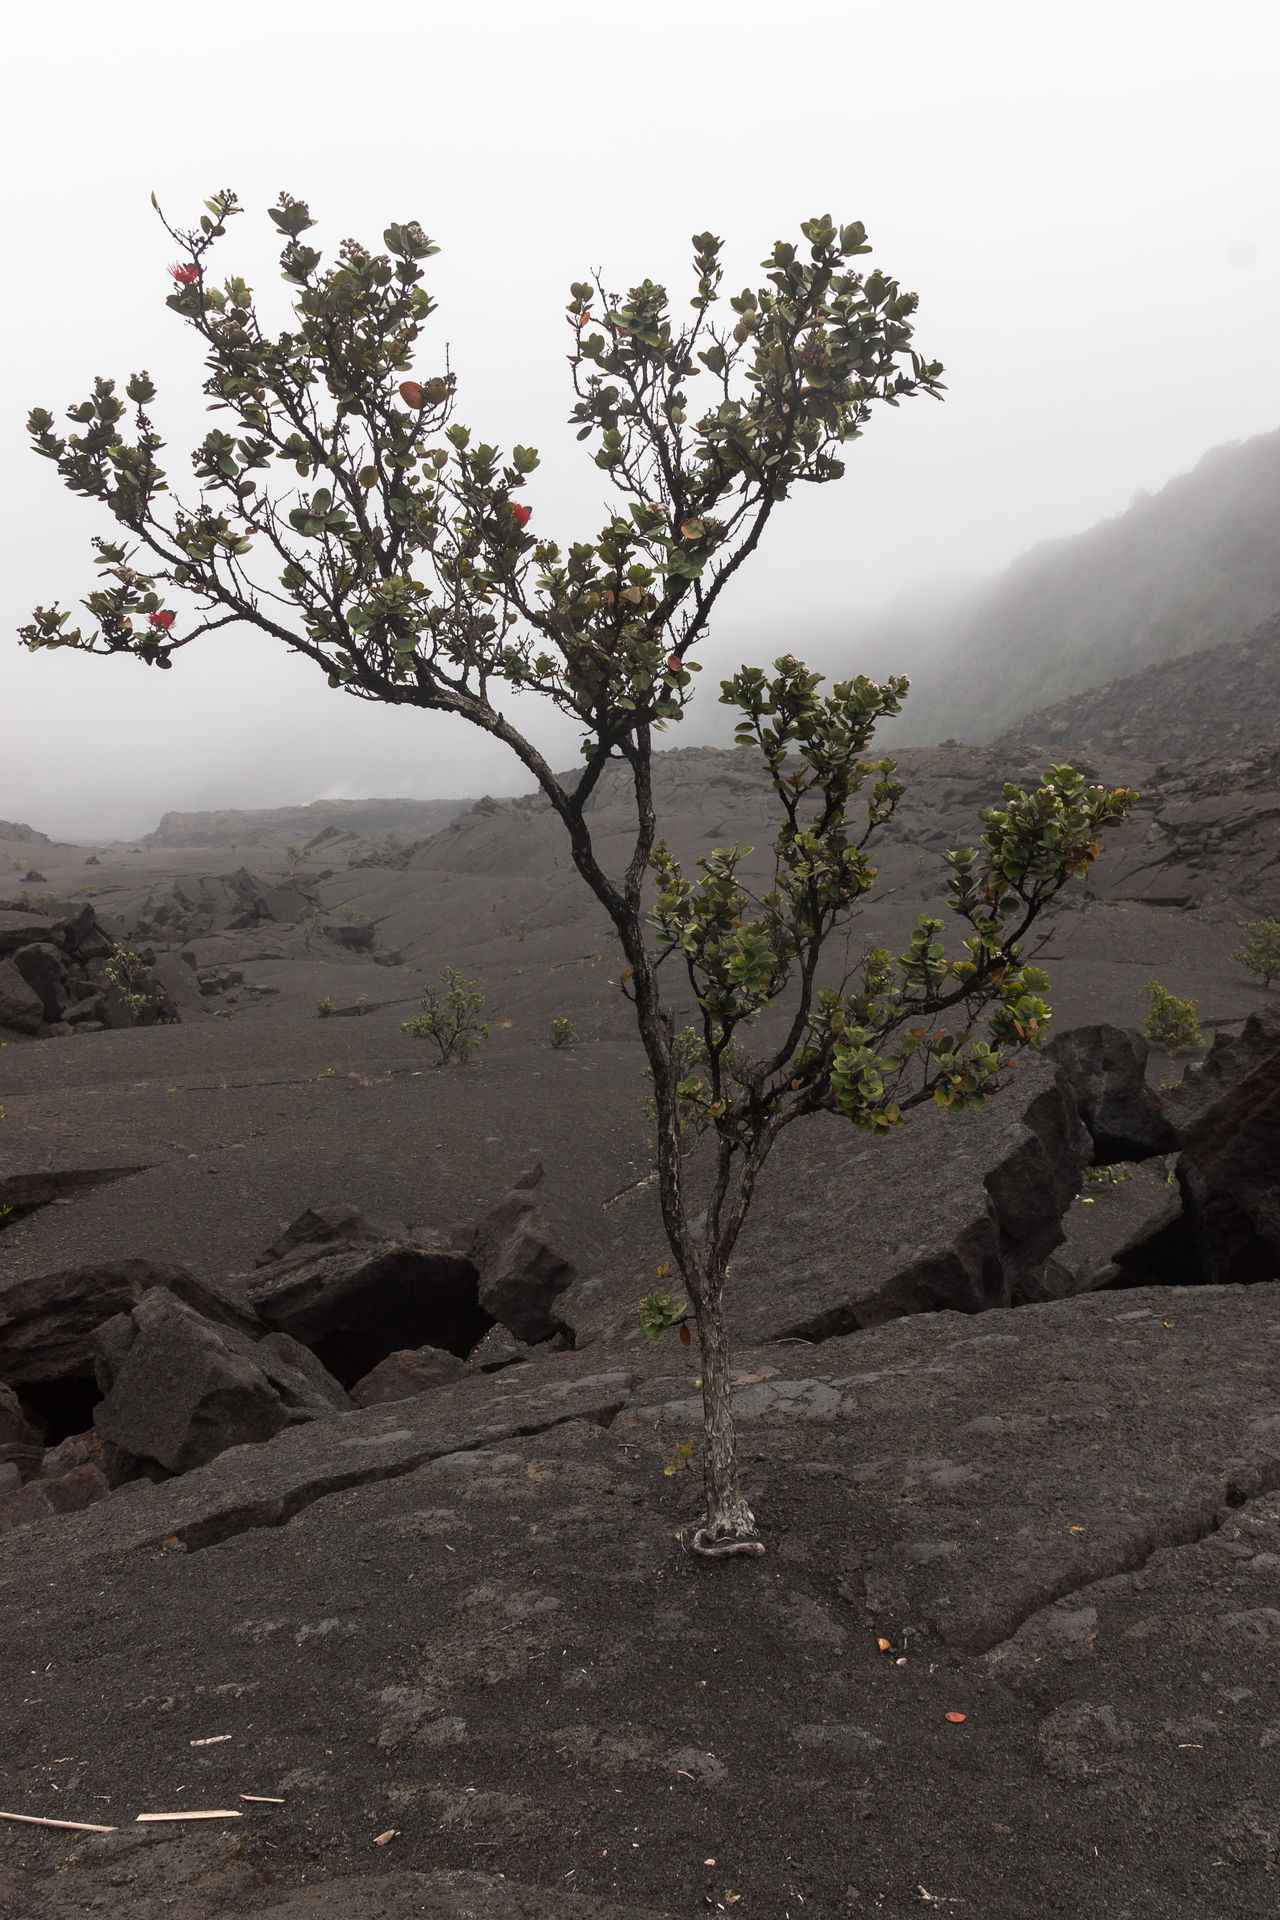 Barren Beauty In Nature Crack Day Fog Growth Hawaii Kilauea Ike Crater Landscape Modest Mountain Nature No People Outdoors Phoenix Plant Scenics Sky Survival Survive Survivor Tranquil Scene Tranquility Tree Volcano National Park